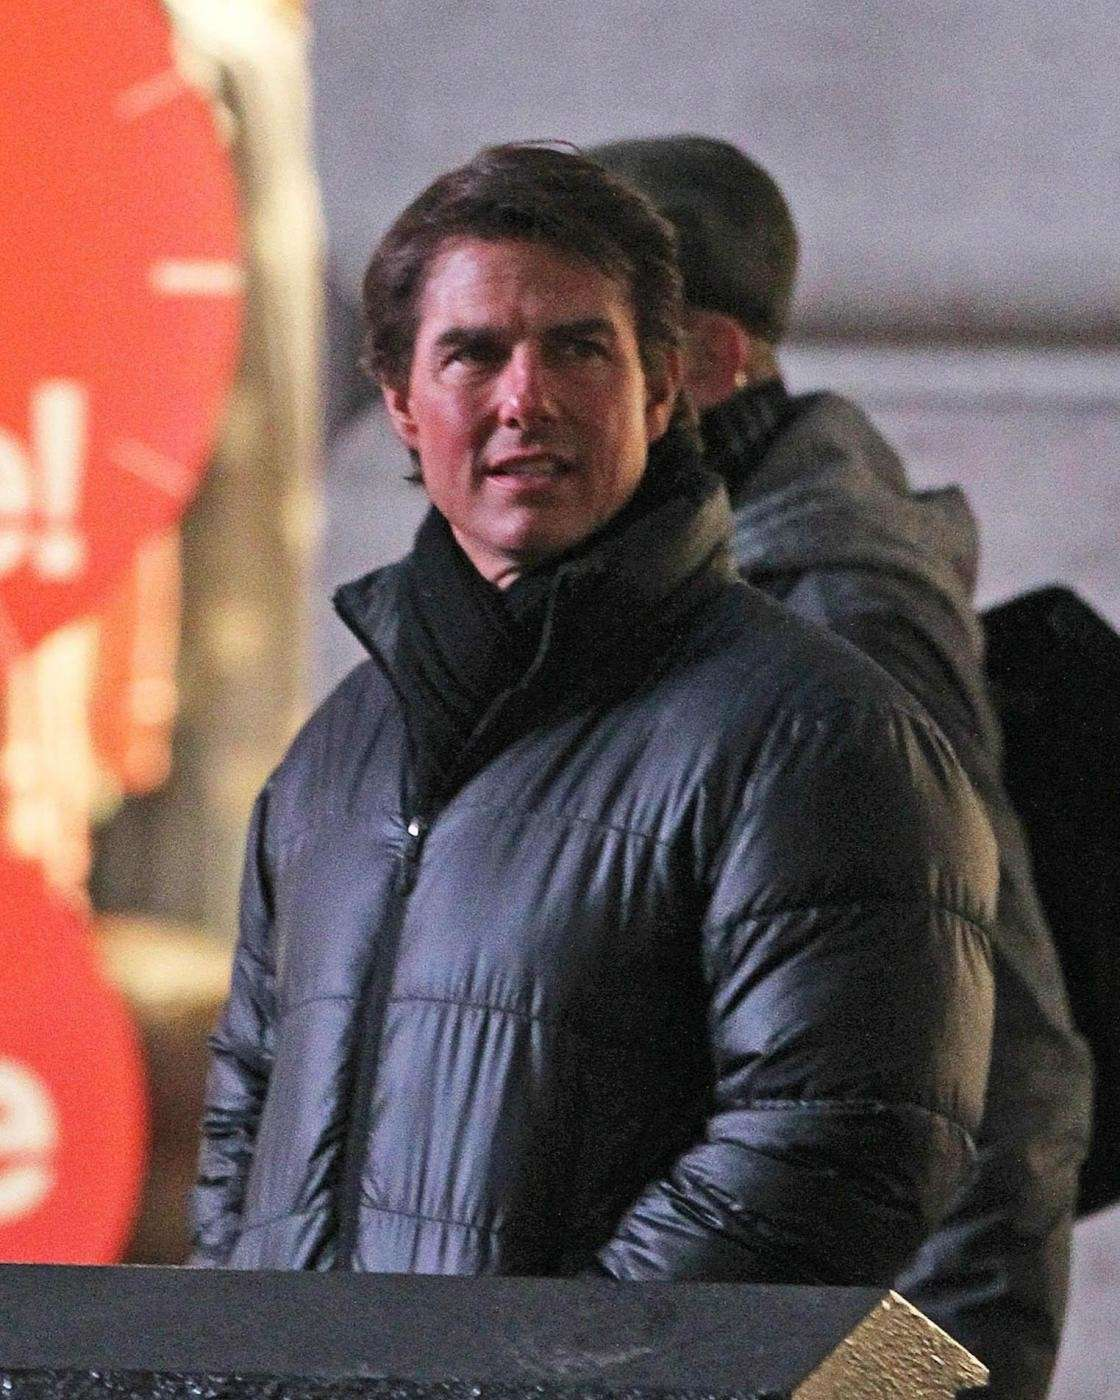 Tom Cruise, Mission Impossible 5